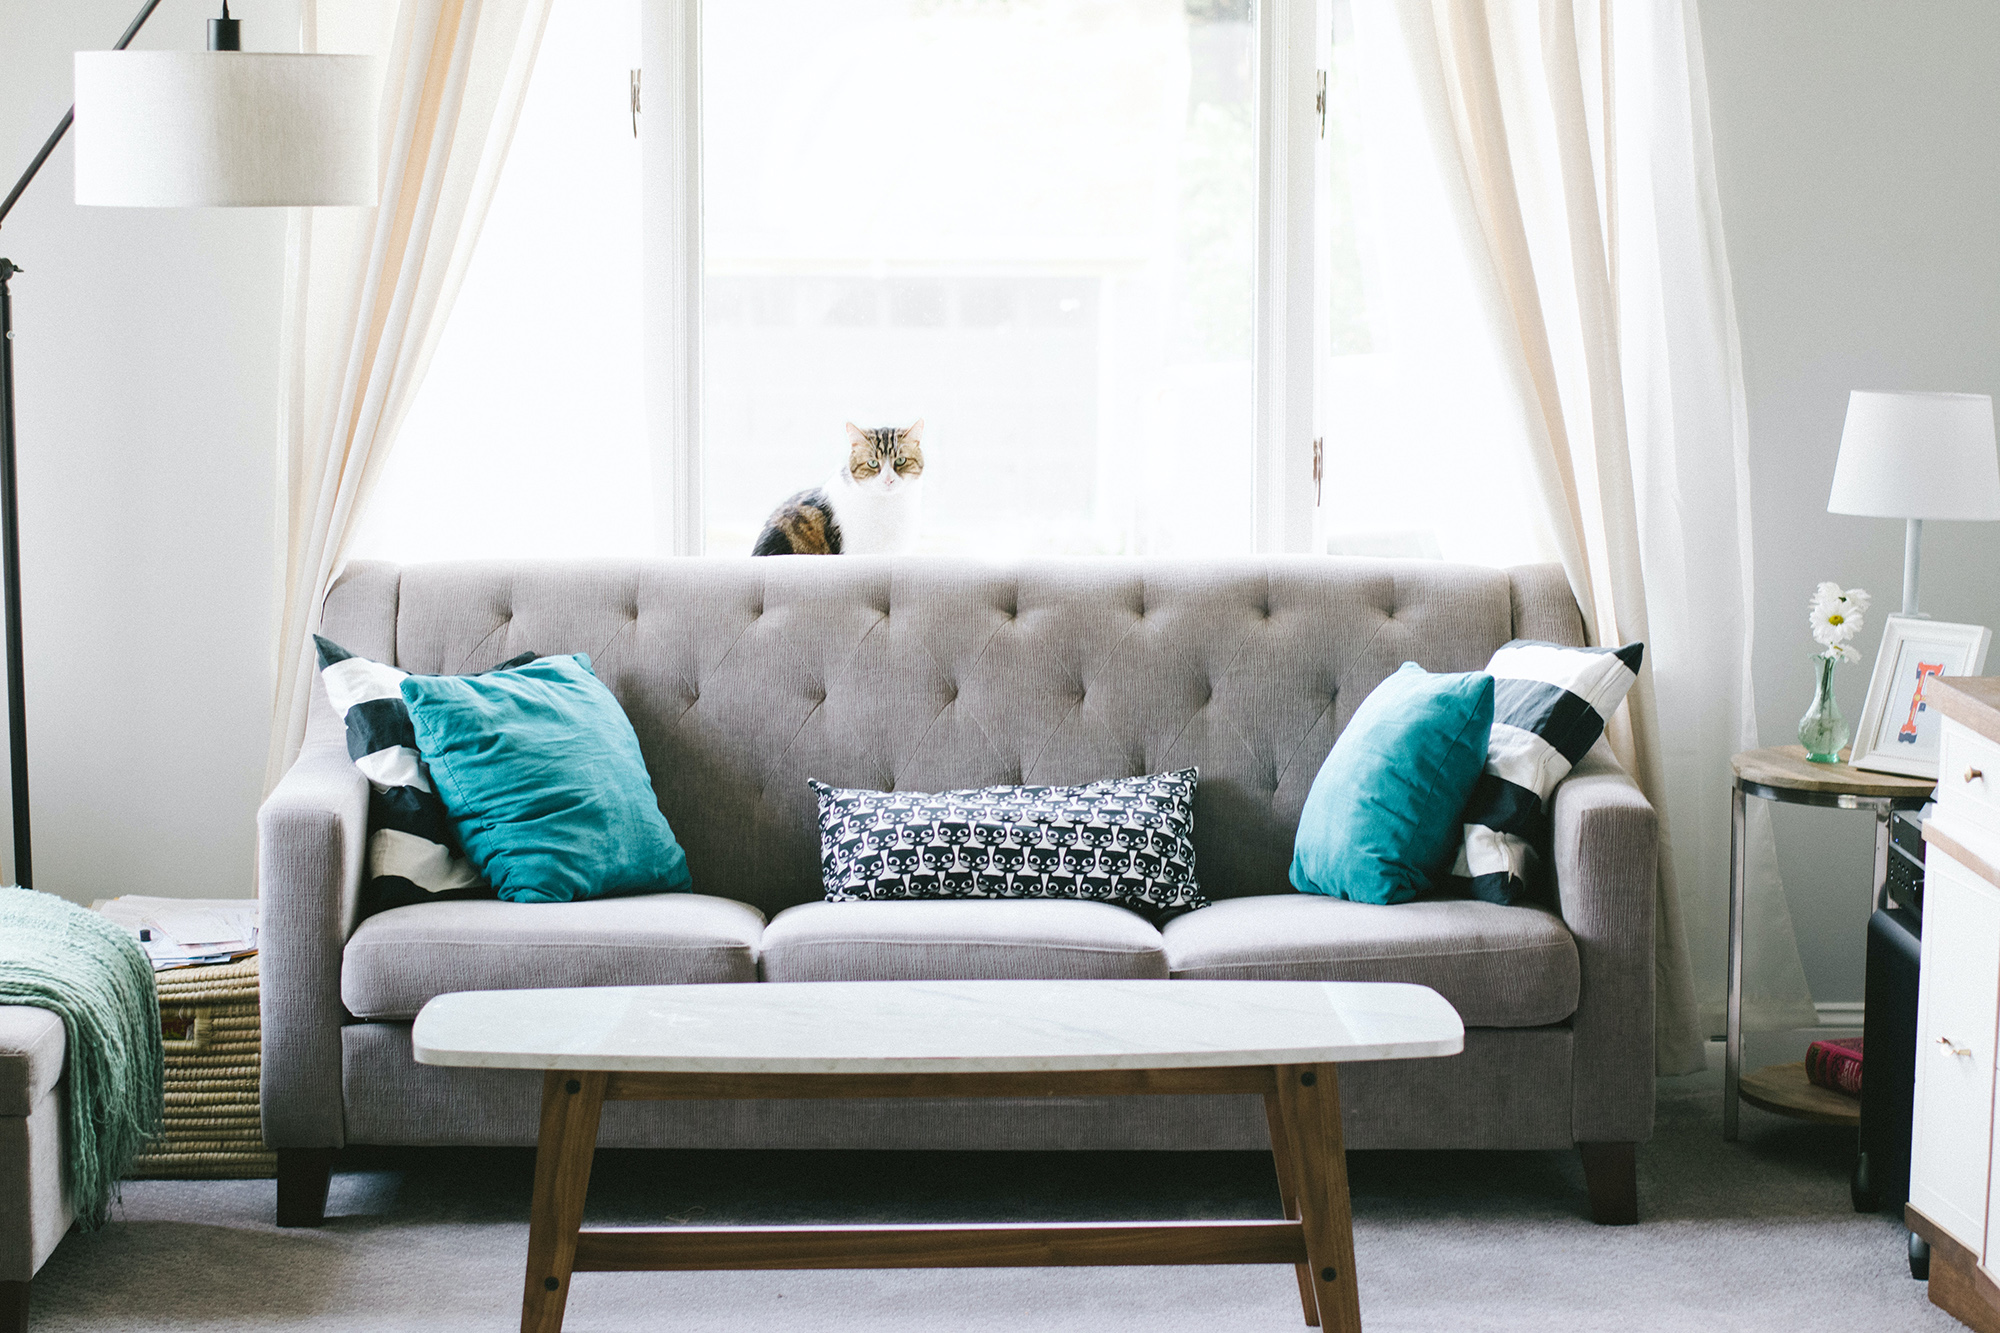 grey sofa with a cat behind it in a tidy house with a